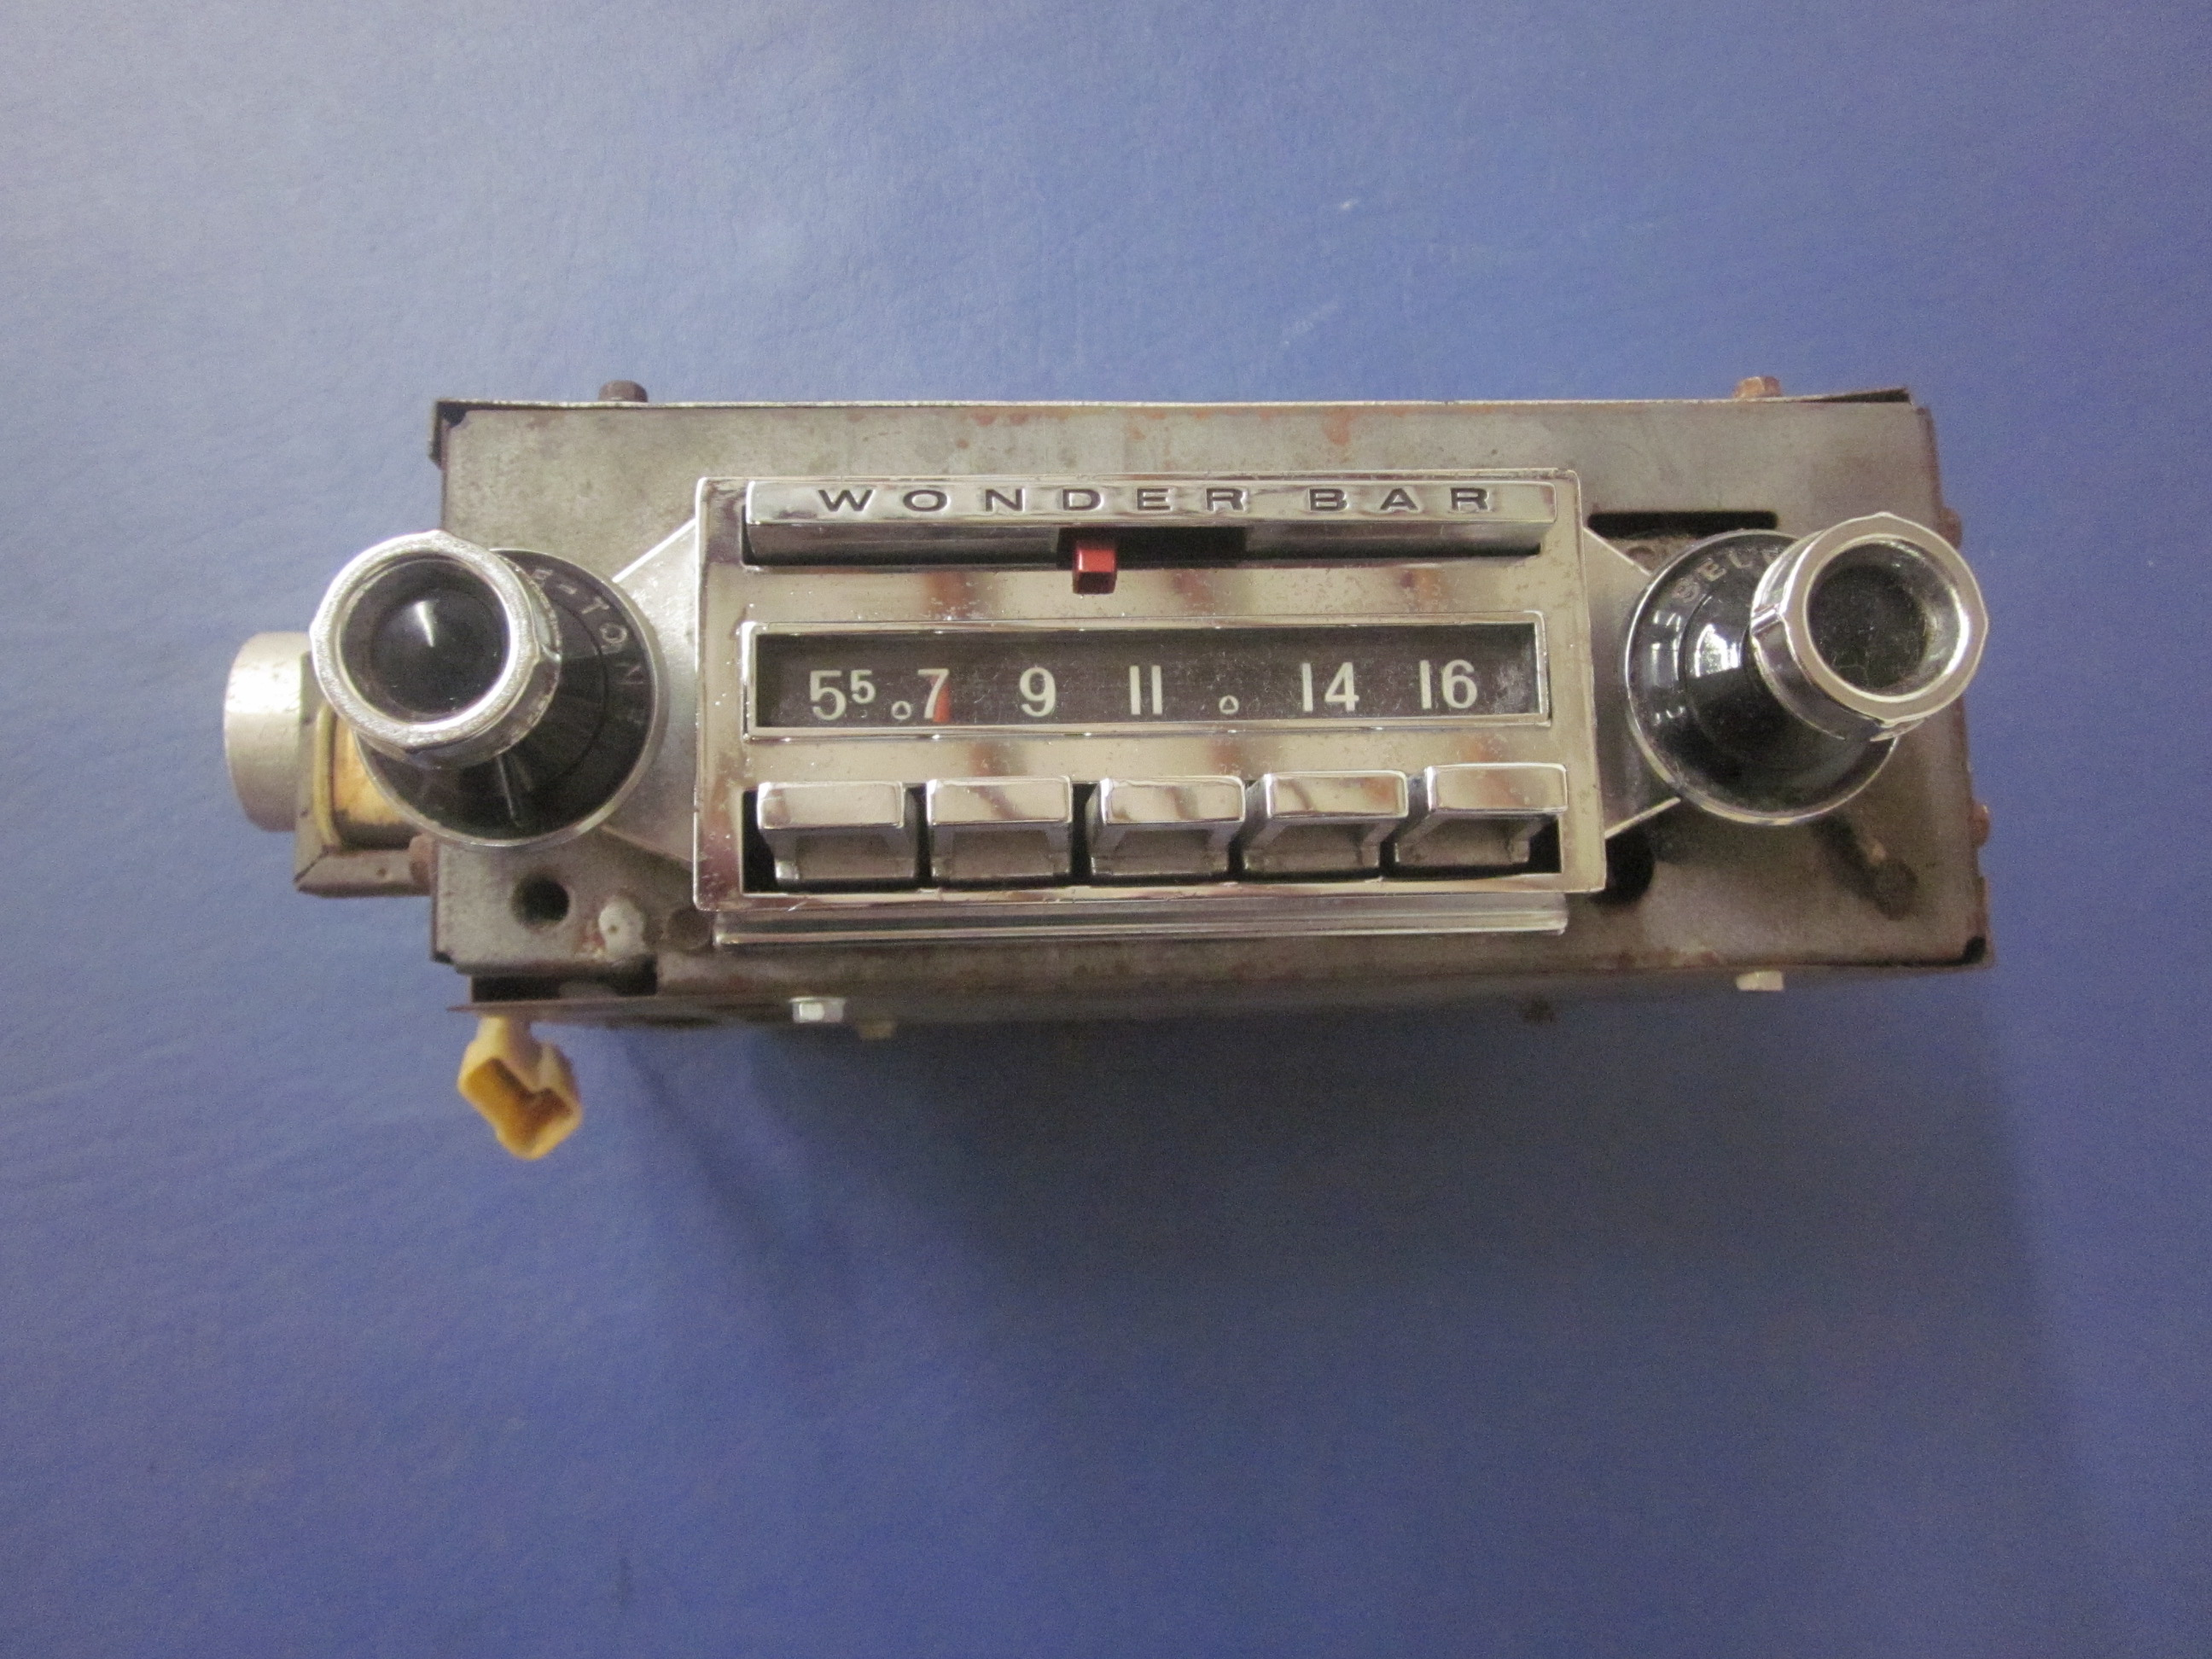 1958 1959 1960 Corvette Wonder Bar AM Radio Used Original